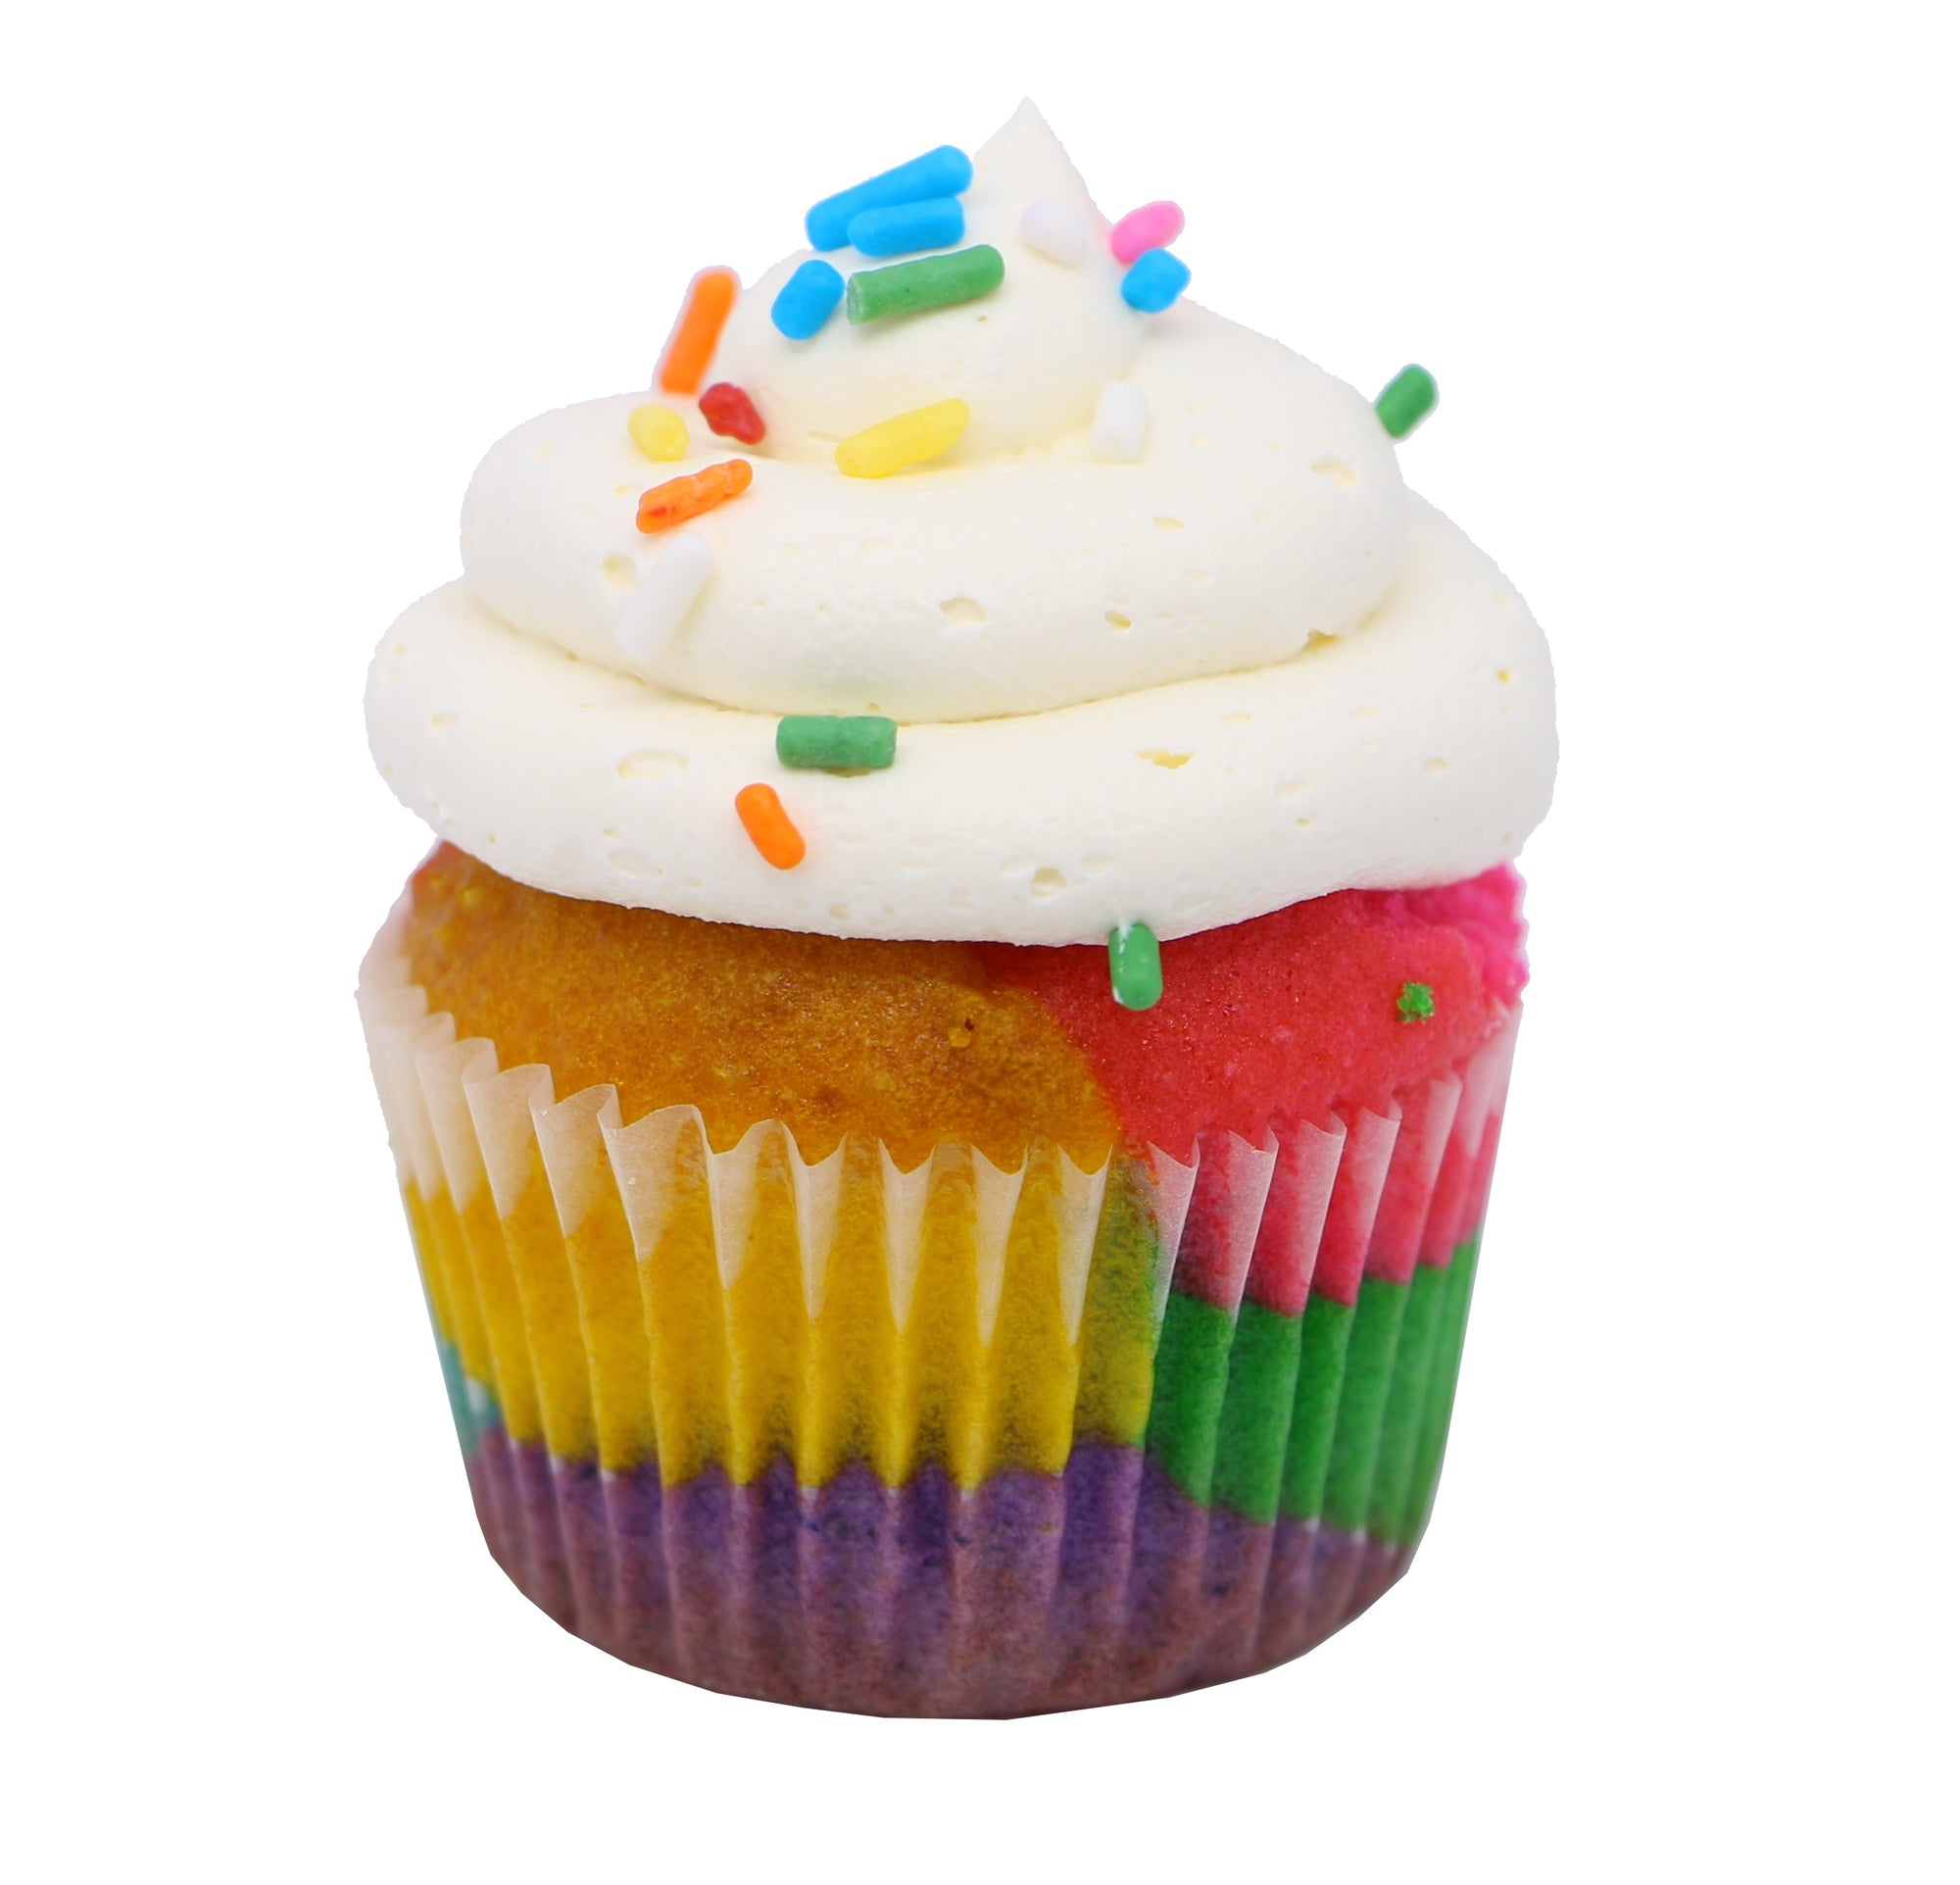 Mini Cupcake - Rainbow - Treats2eat - Wedding & Birthday Party Dessert Catering Near Me